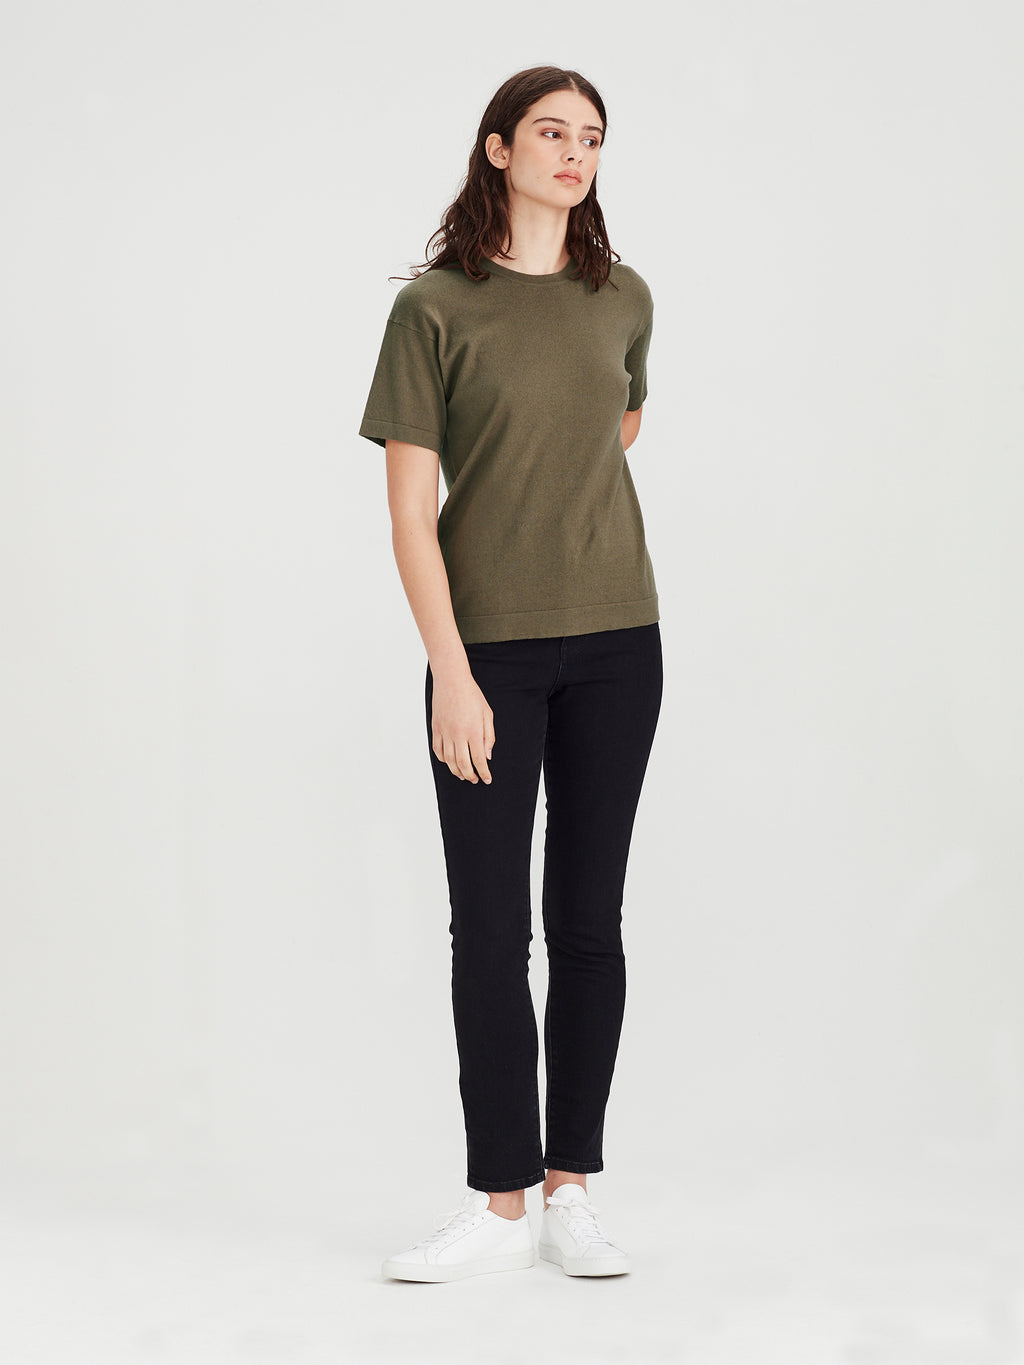 Luxe T (Cotton Cashmere) Moss